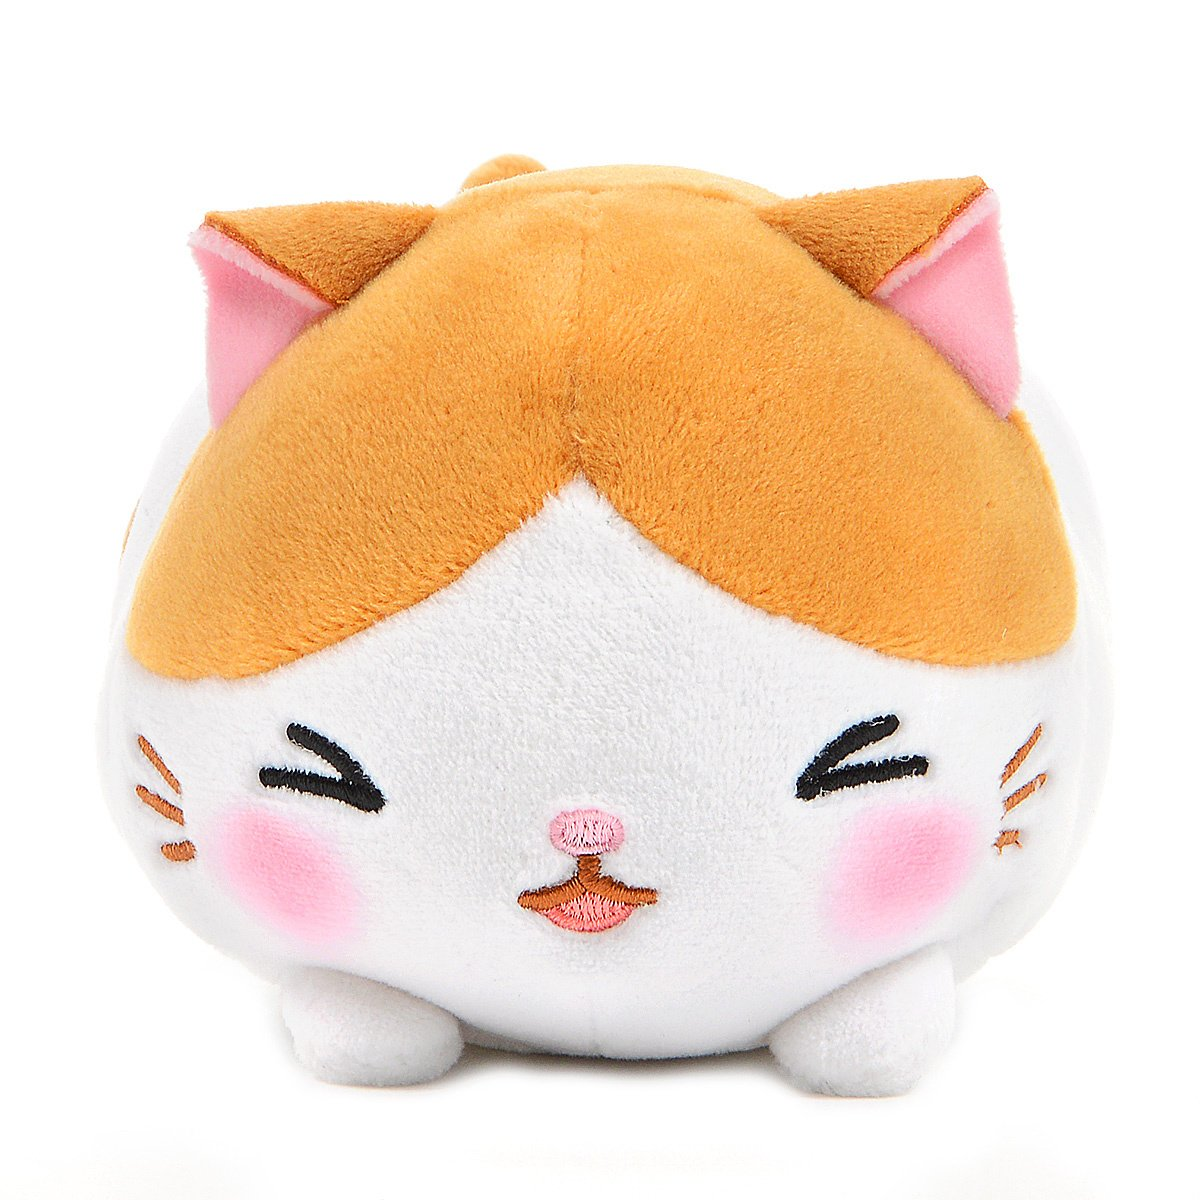 Mochikko Neko Nyanzu White/Orange Cat Plush Amuse Super Soft Japan Standard Size Chibi-nyan